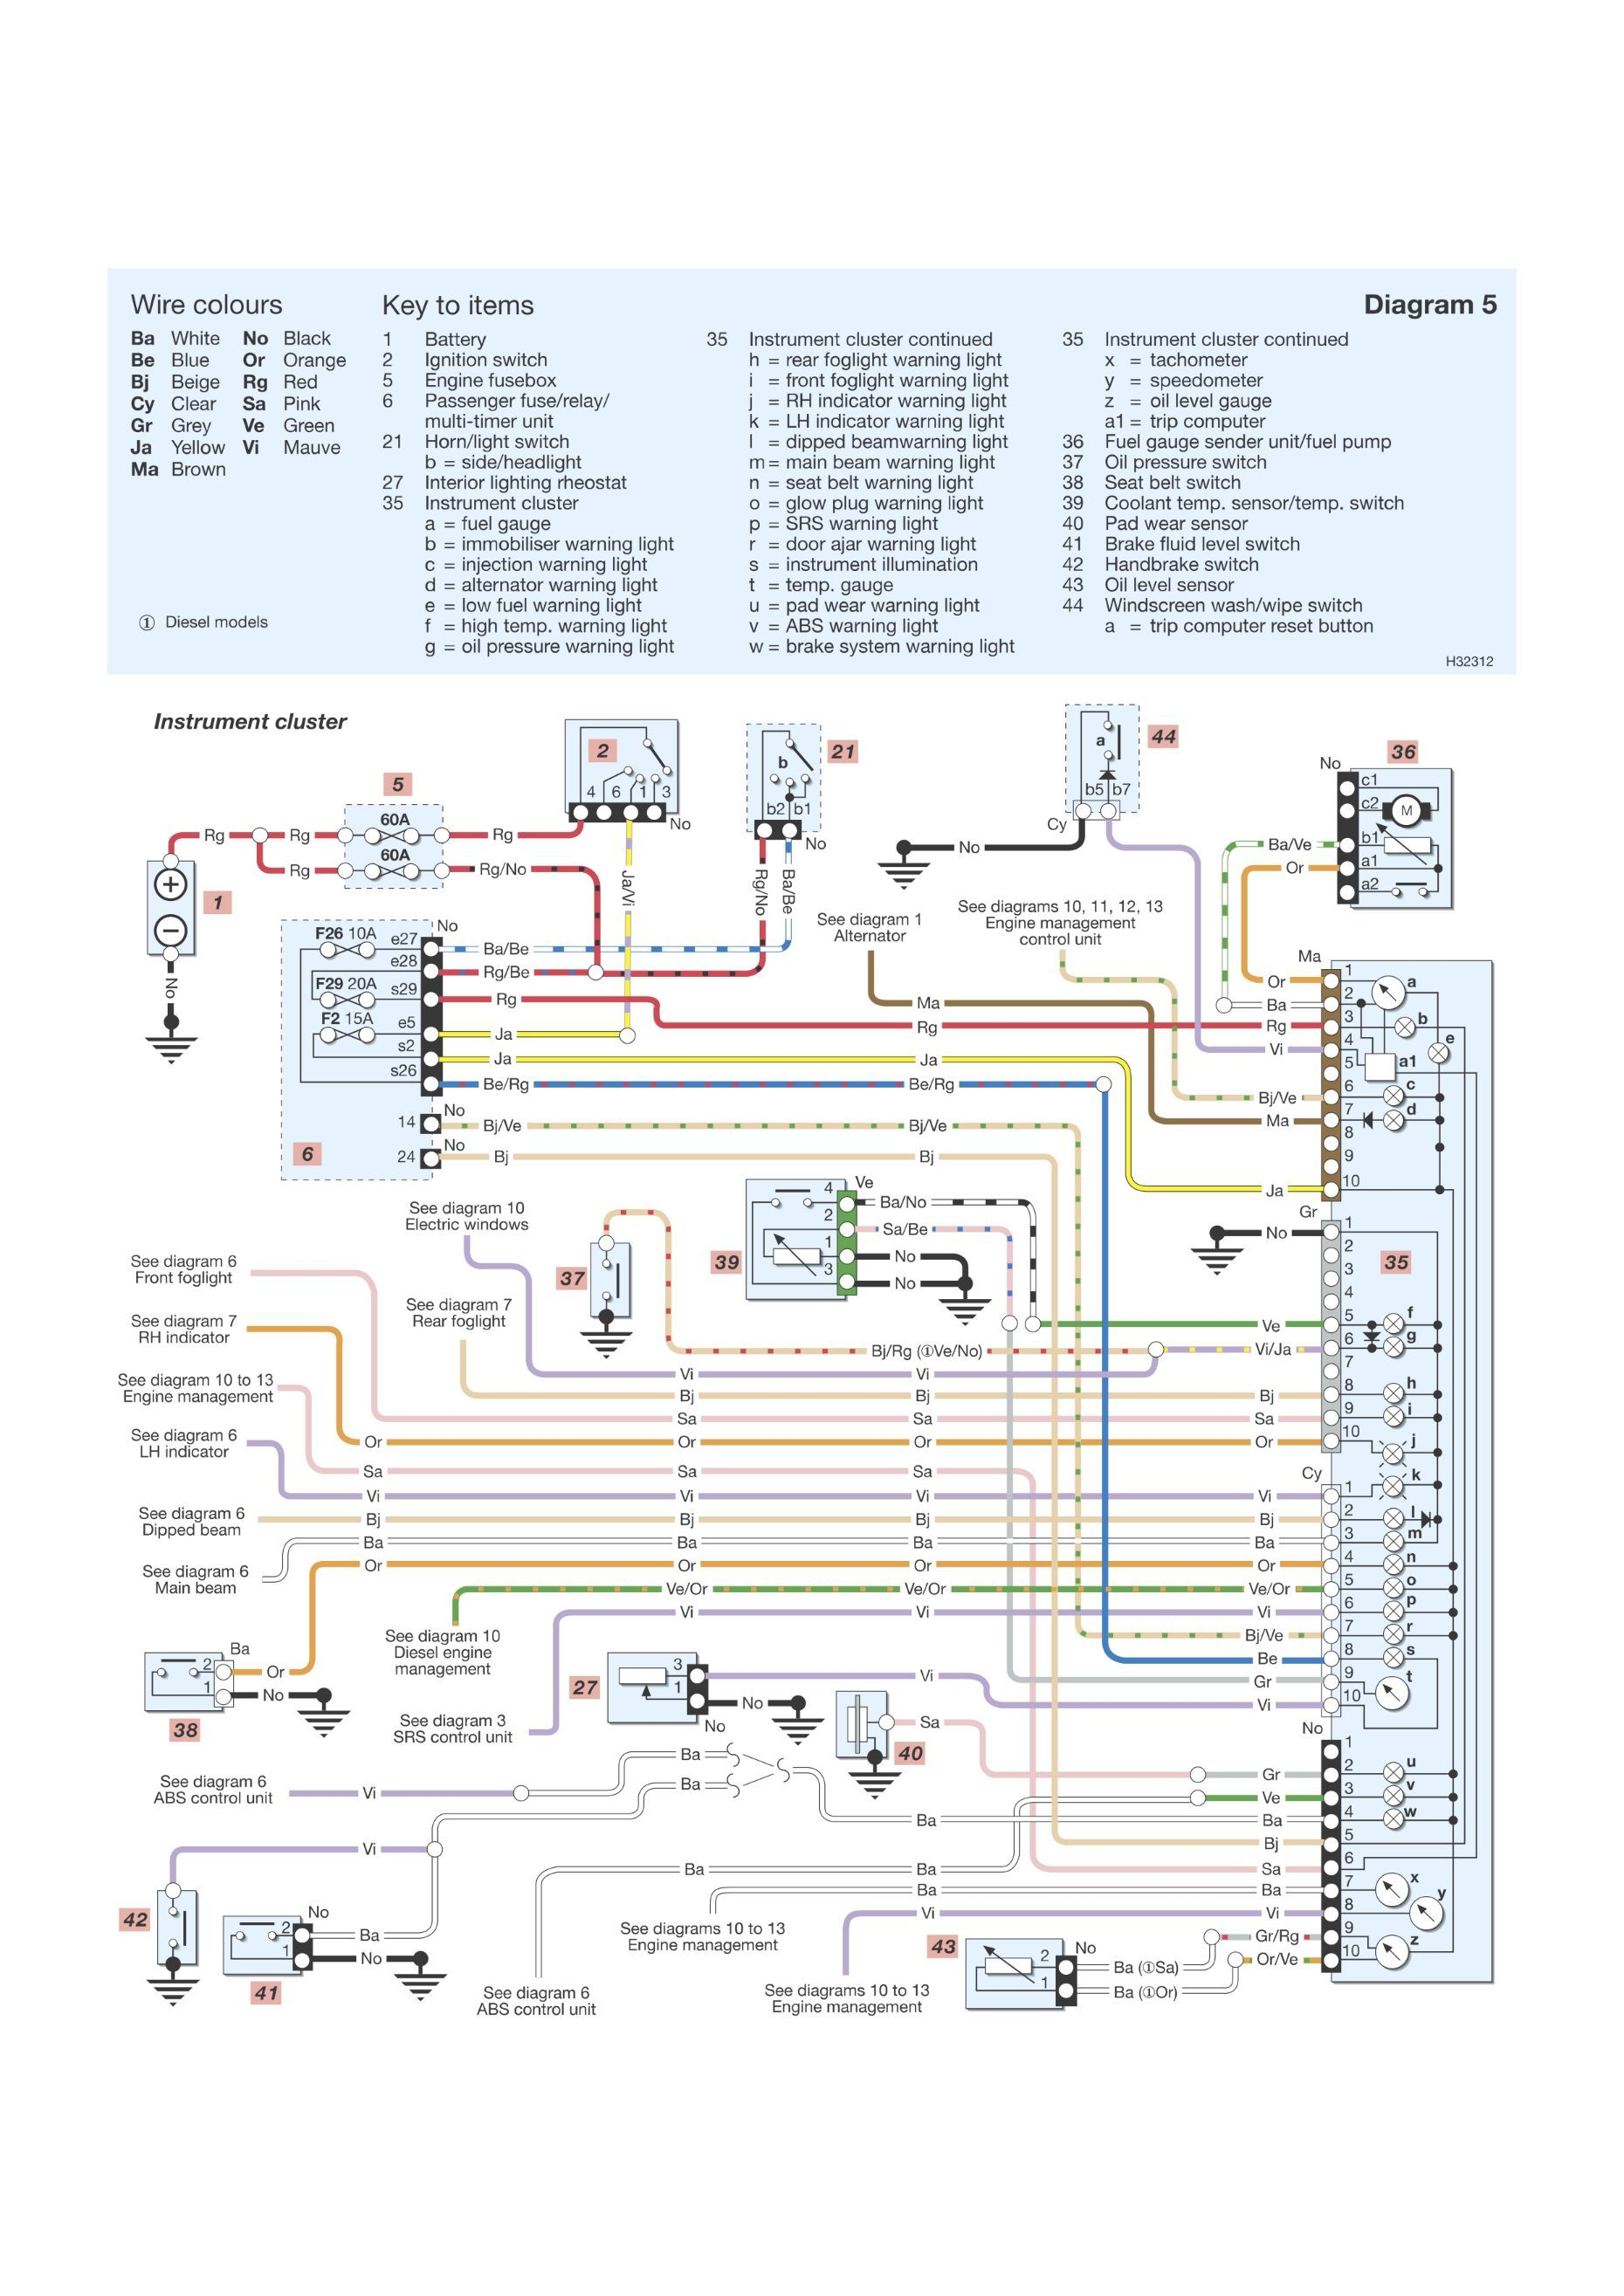 renault trafic wiring diagram download car stuff diagram cars wiring diagrams peugeot as well toyota land cruiser 1973 fj40 wiring [ 1860 x 2630 Pixel ]